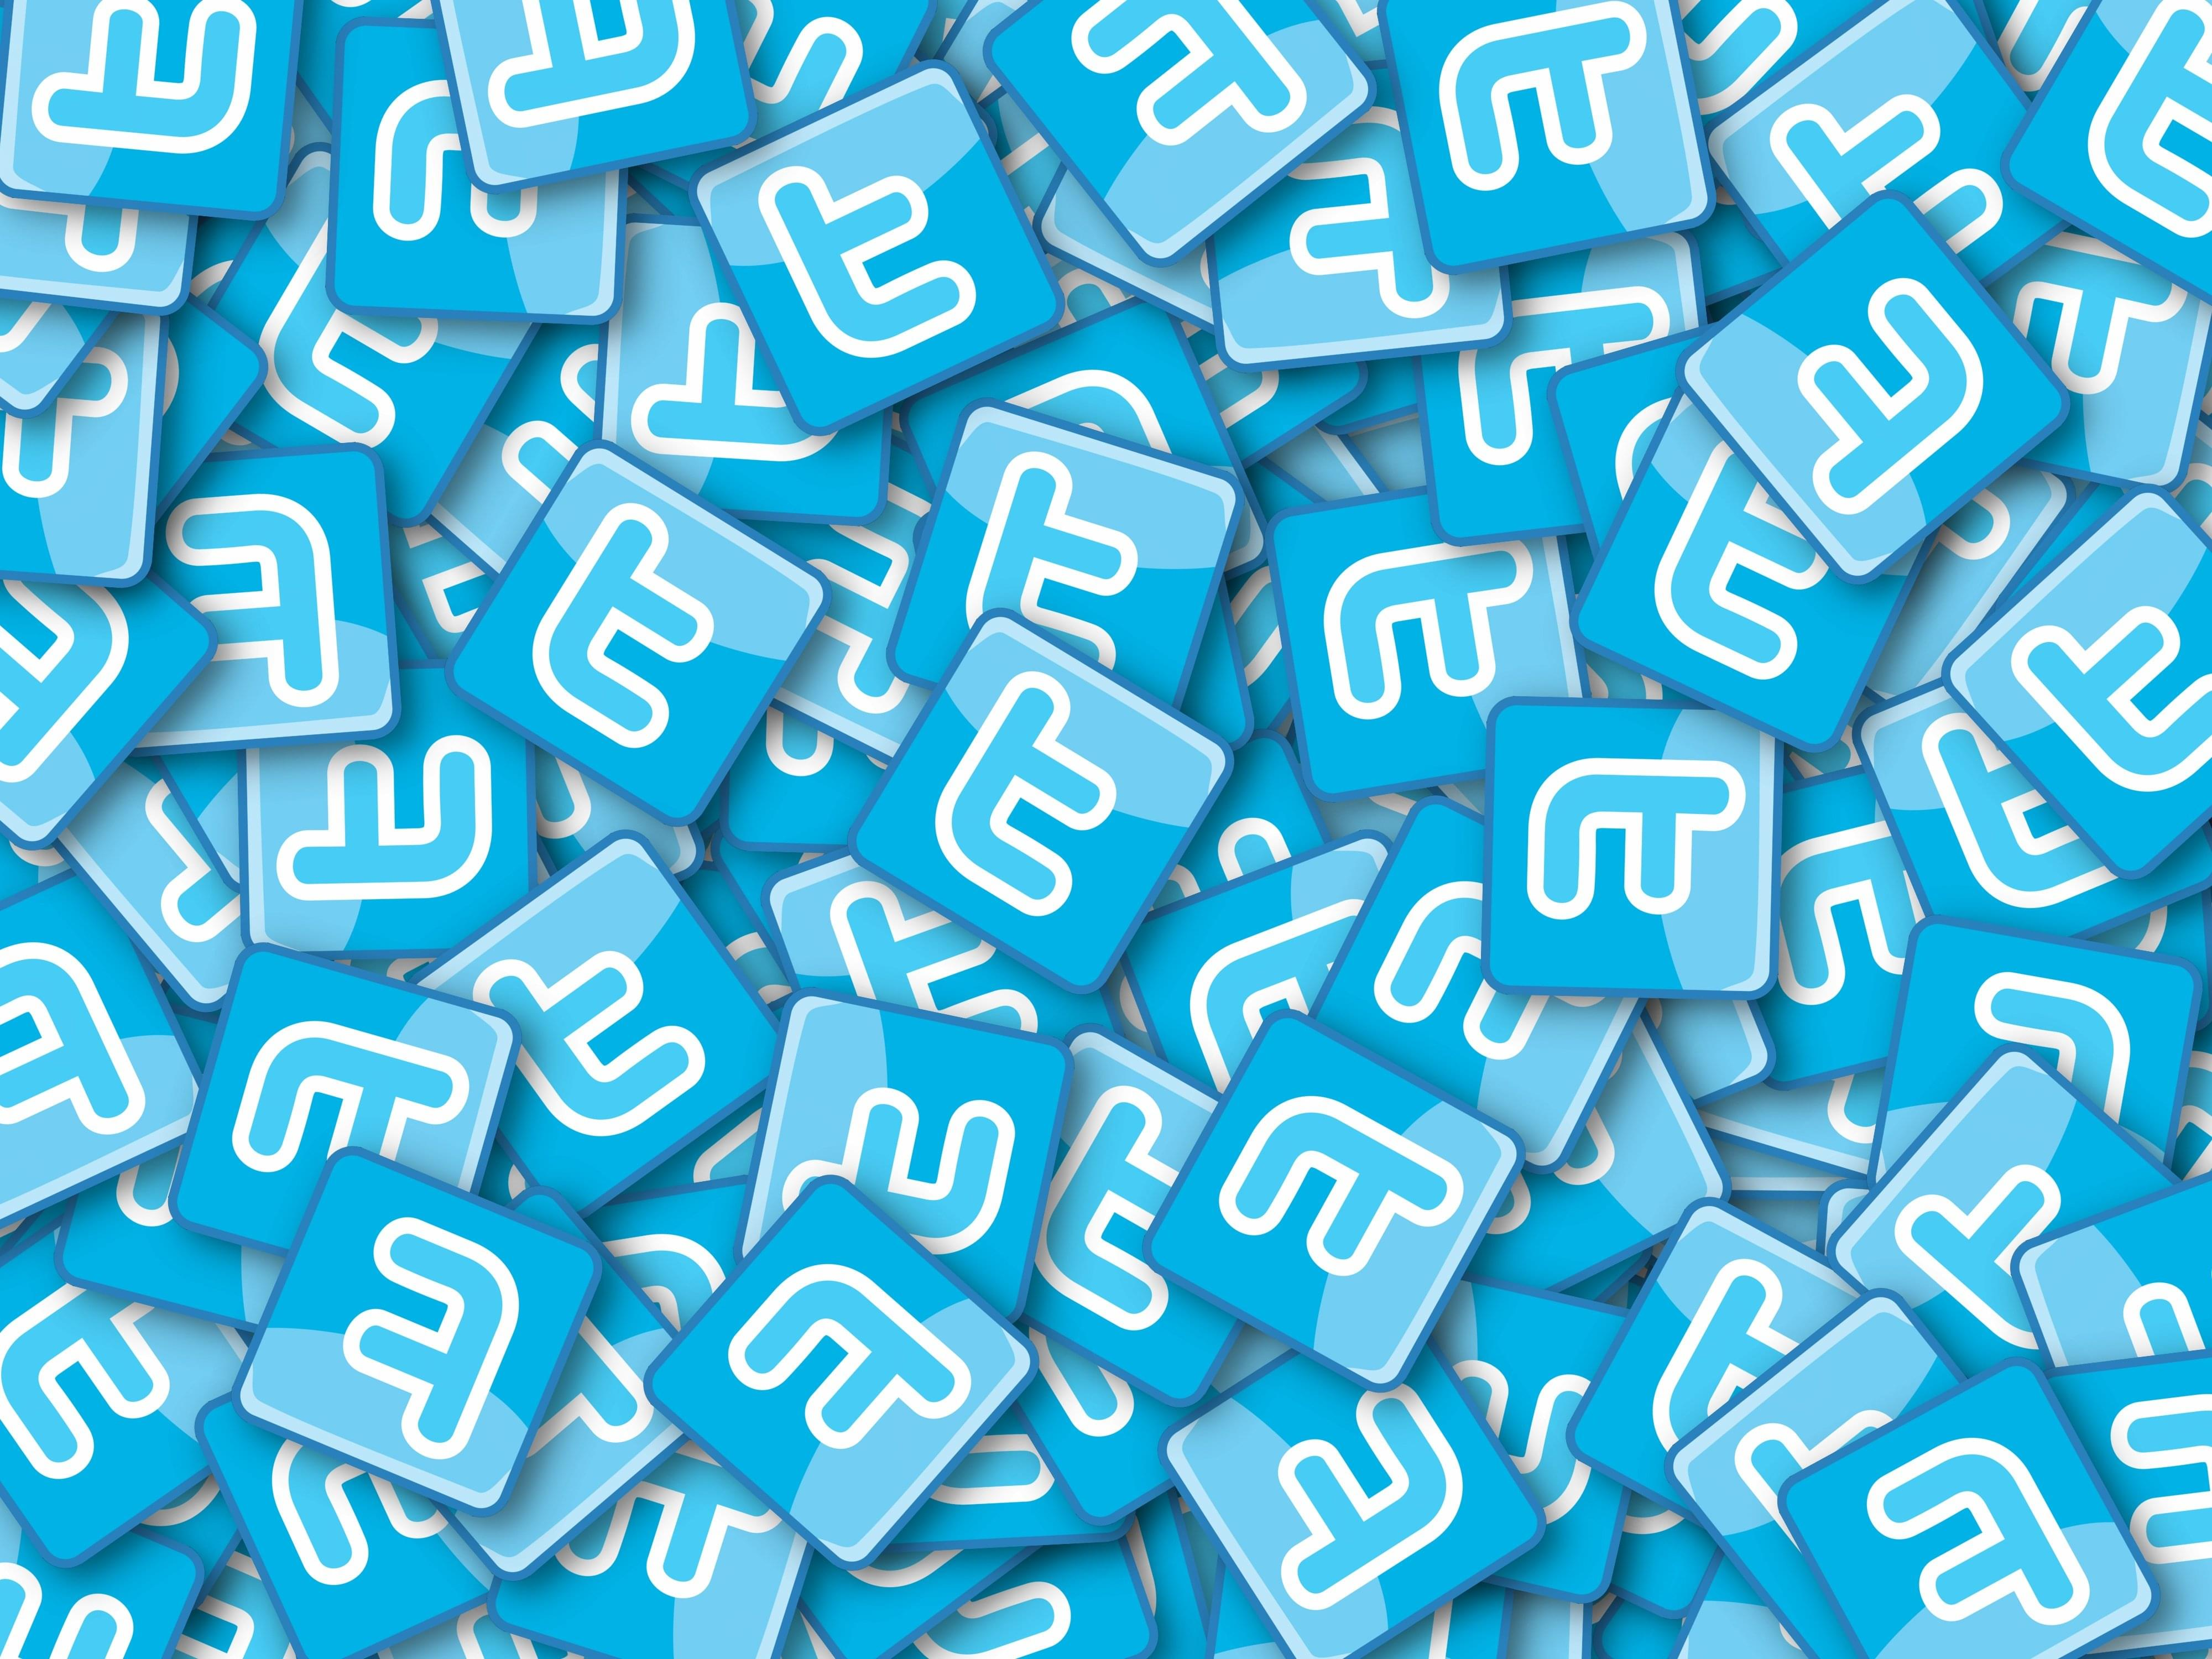 5 Ways to Engage Talent on Twitter - Social Talent